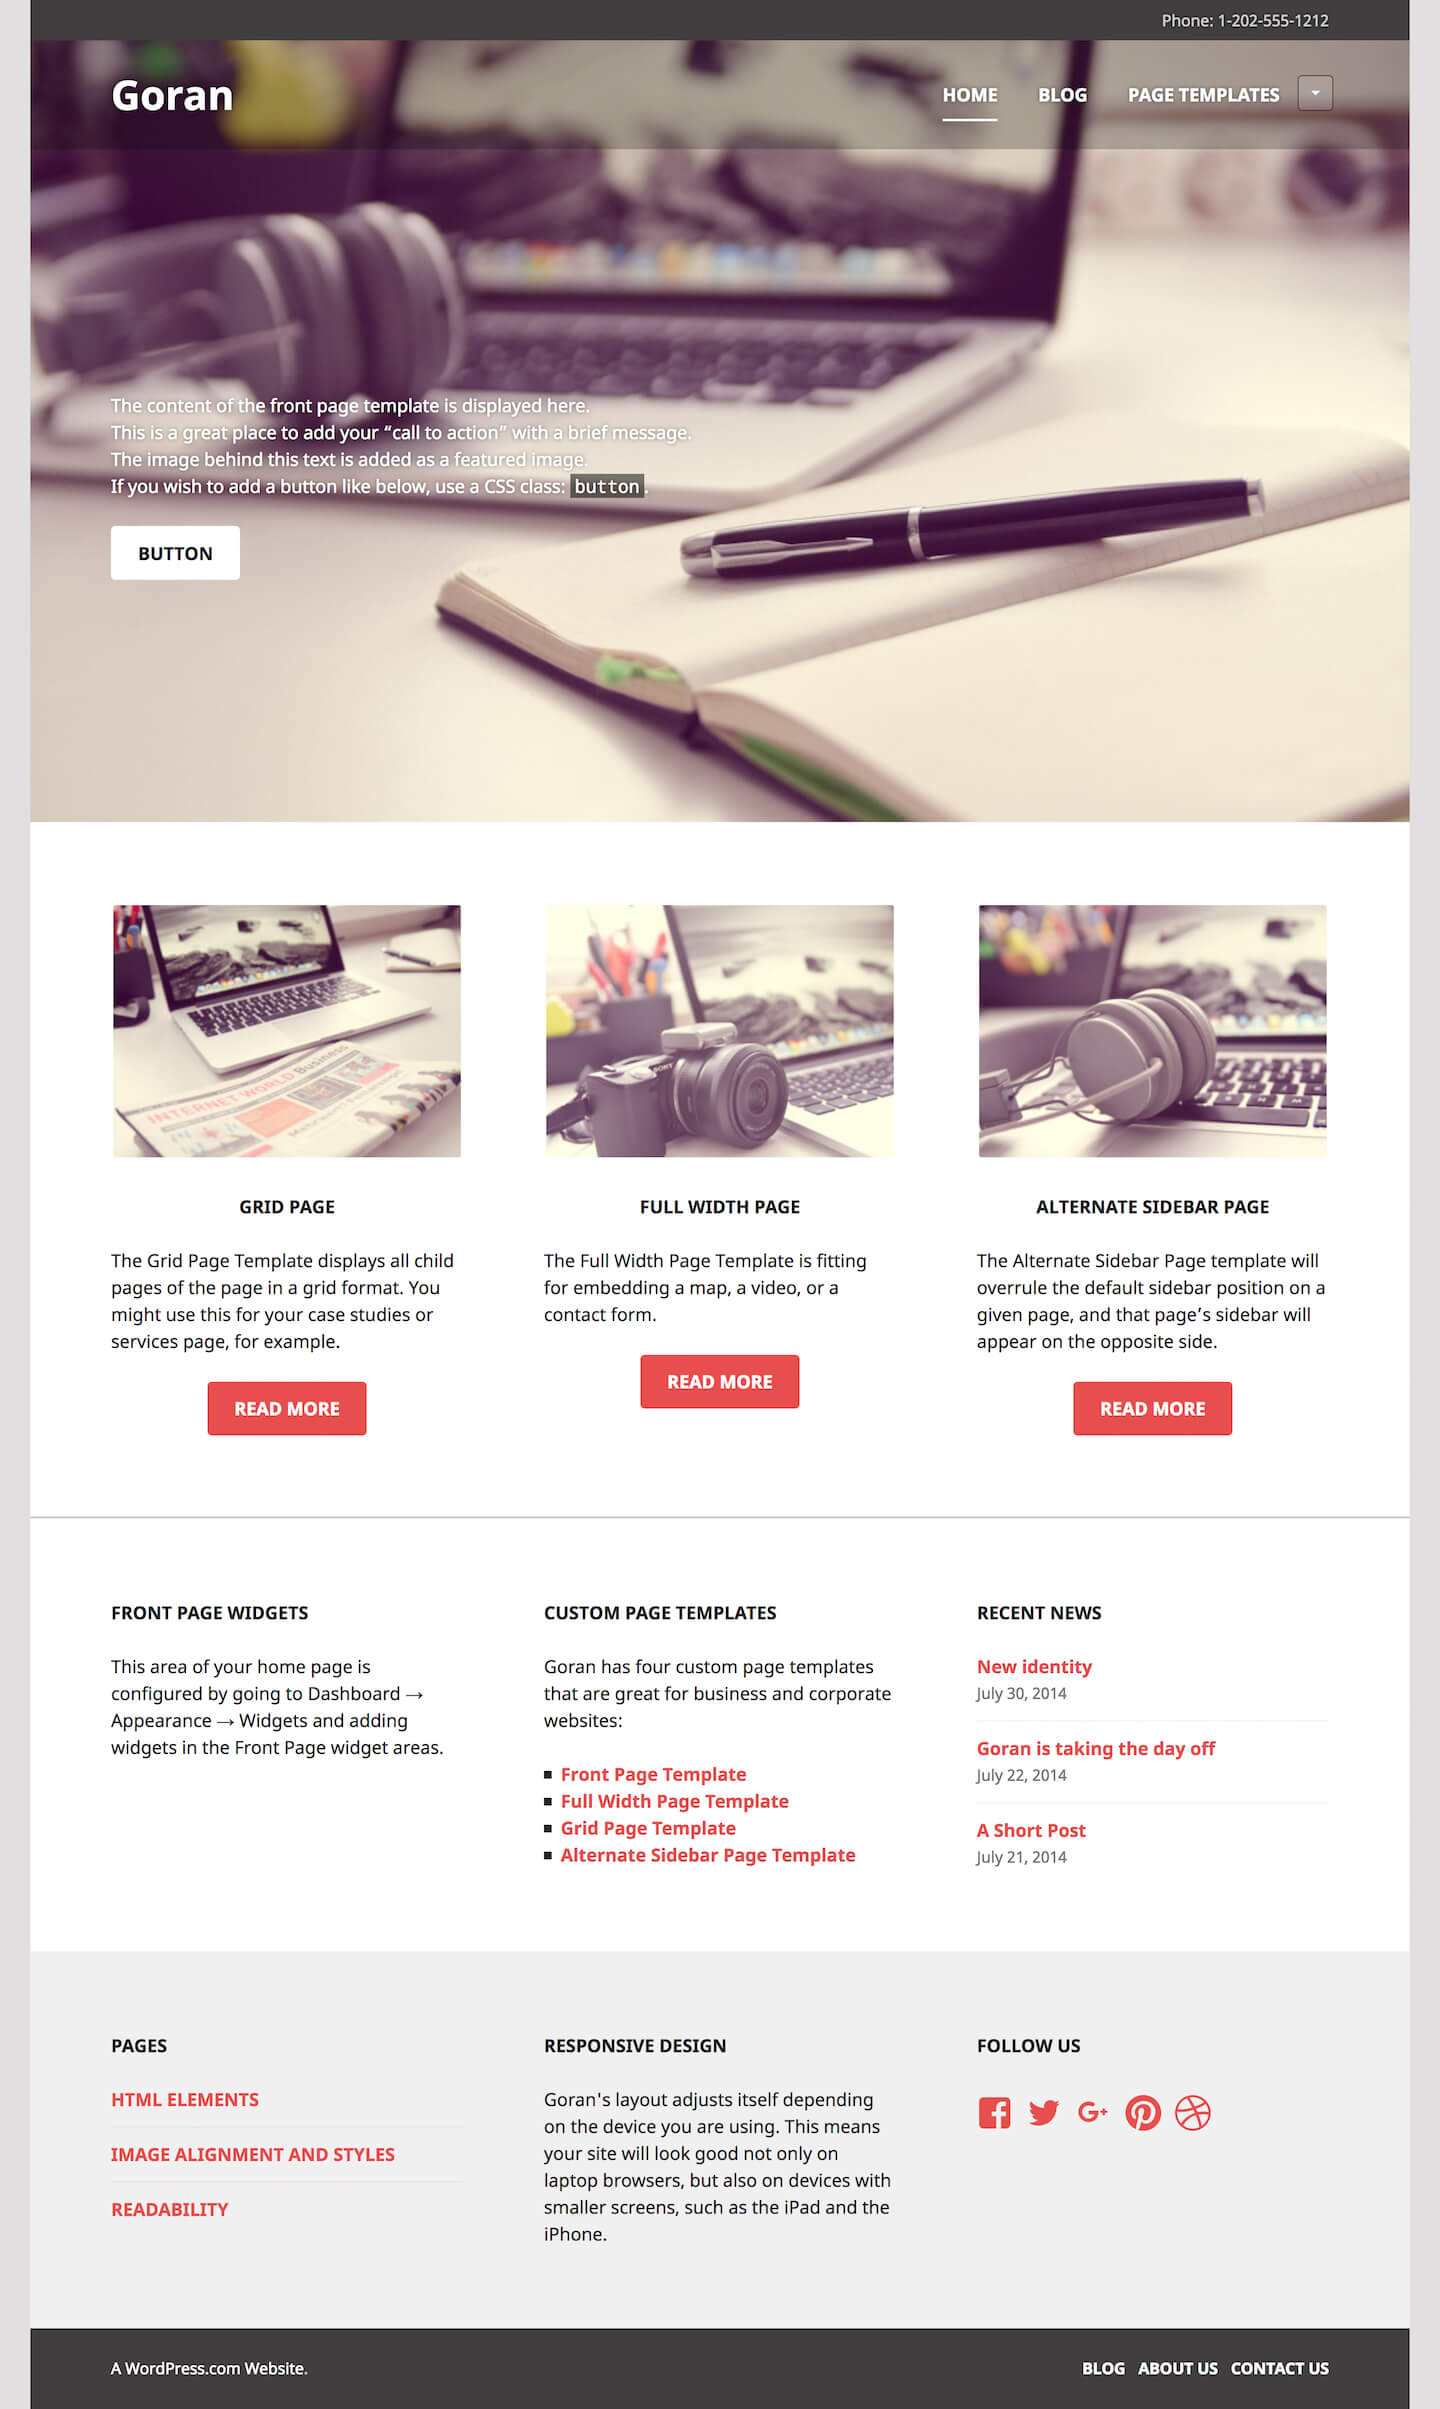 Goran WordPress Theme